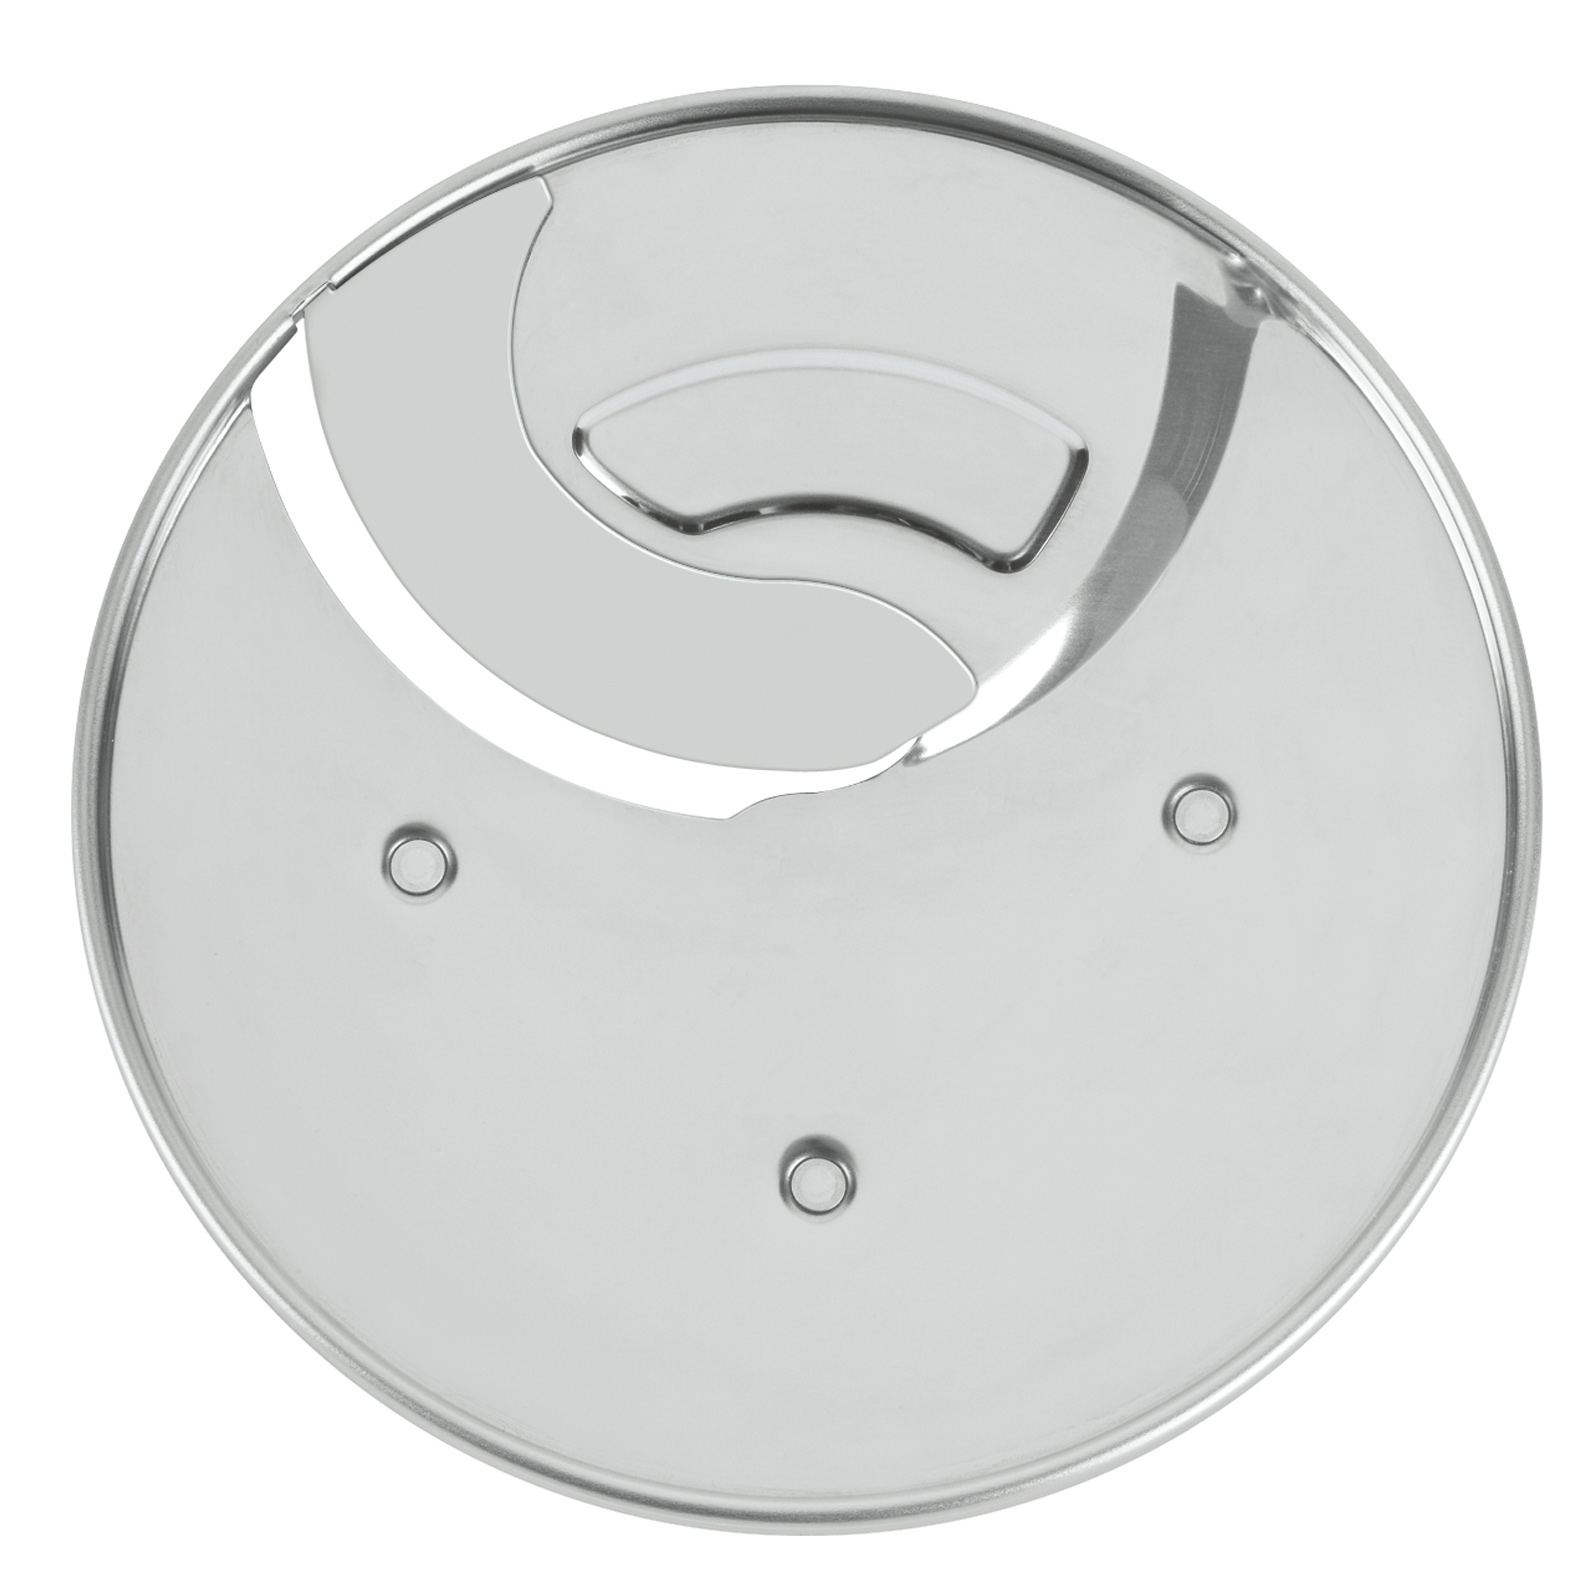 Waring WFP149 food processor, disc plate, slicing